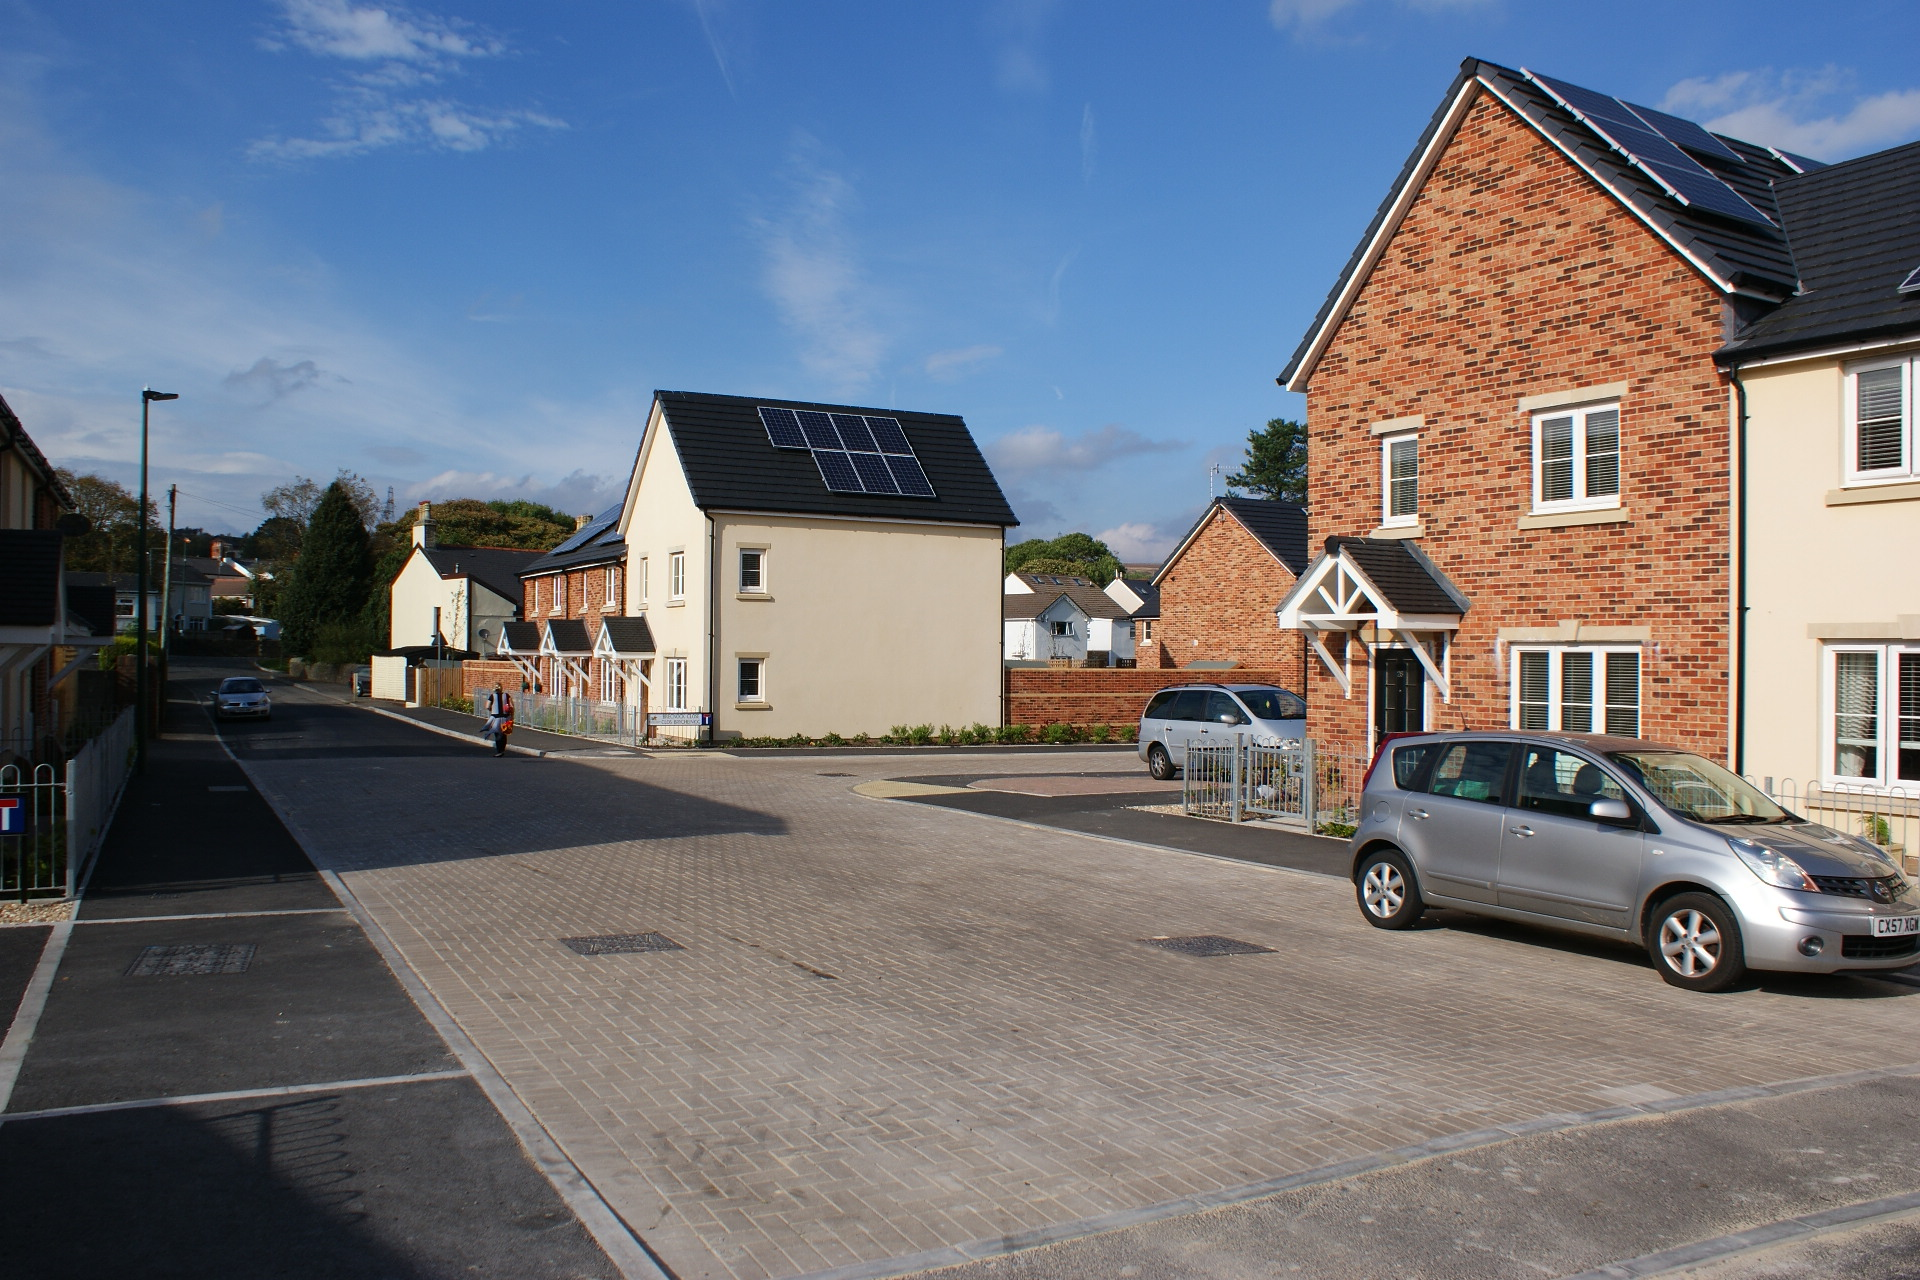 New homes around a shared space